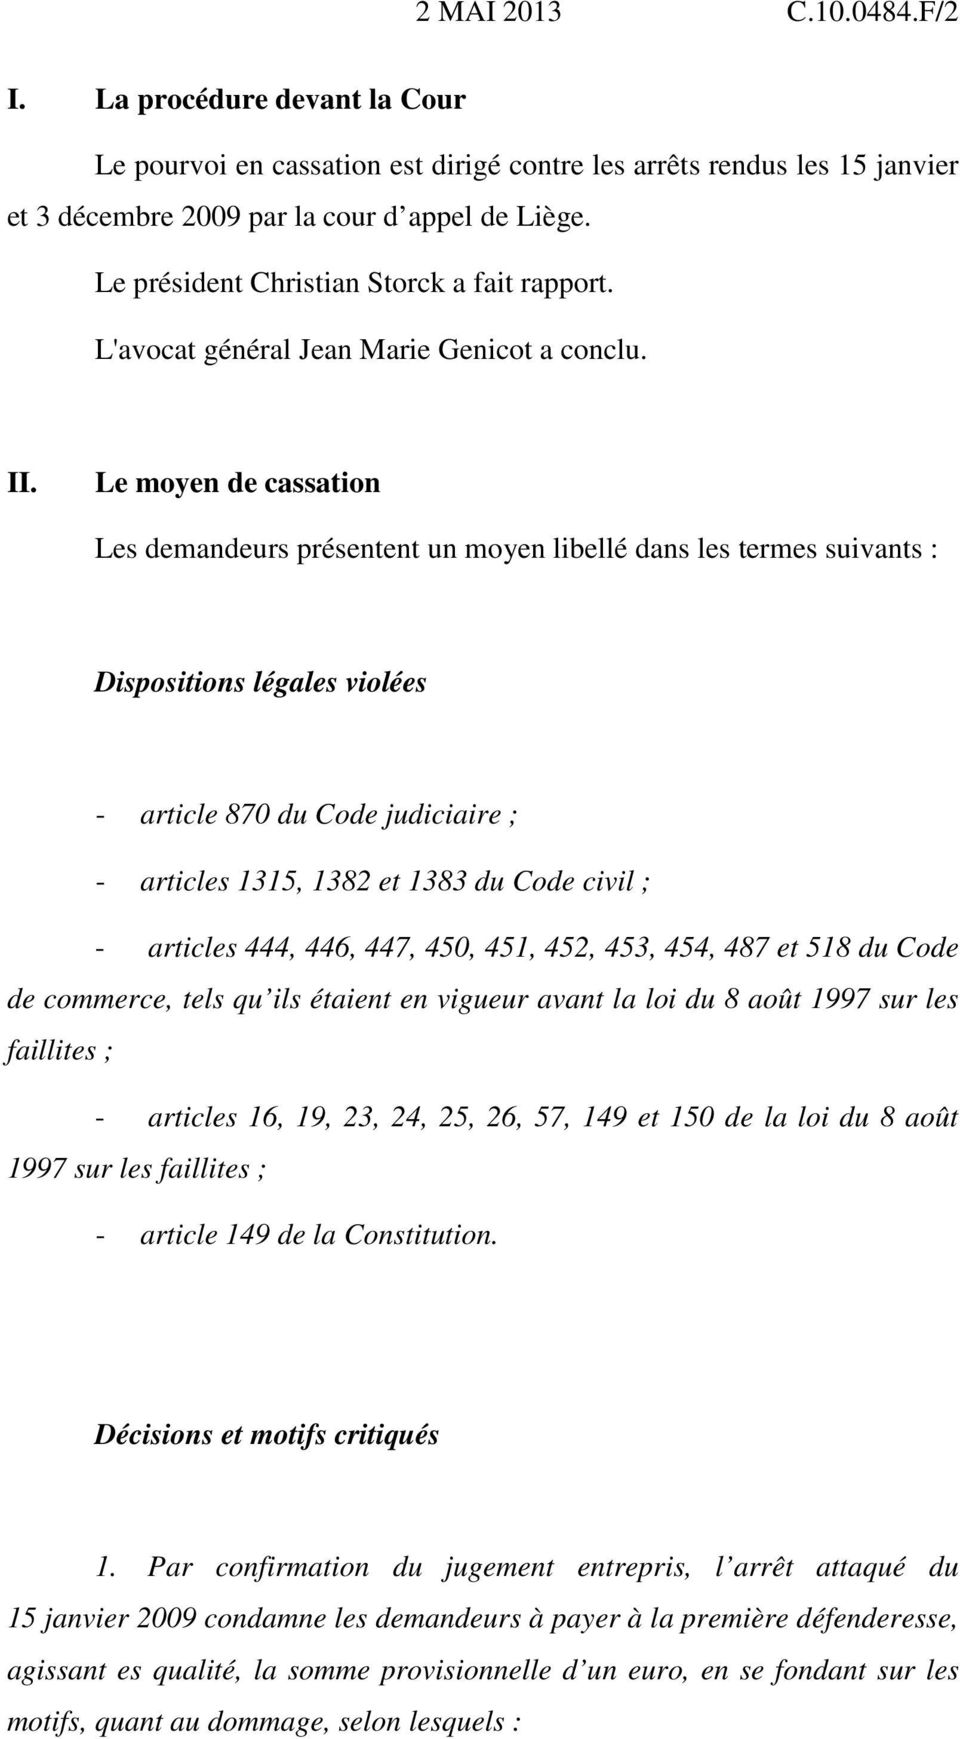 Le moyen de cassation Les demandeurs présentent un moyen libellé dans les termes suivants : Dispositions légales violées - article 870 du Code judiciaire ; - articles 1315, 1382 et 1383 du Code civil